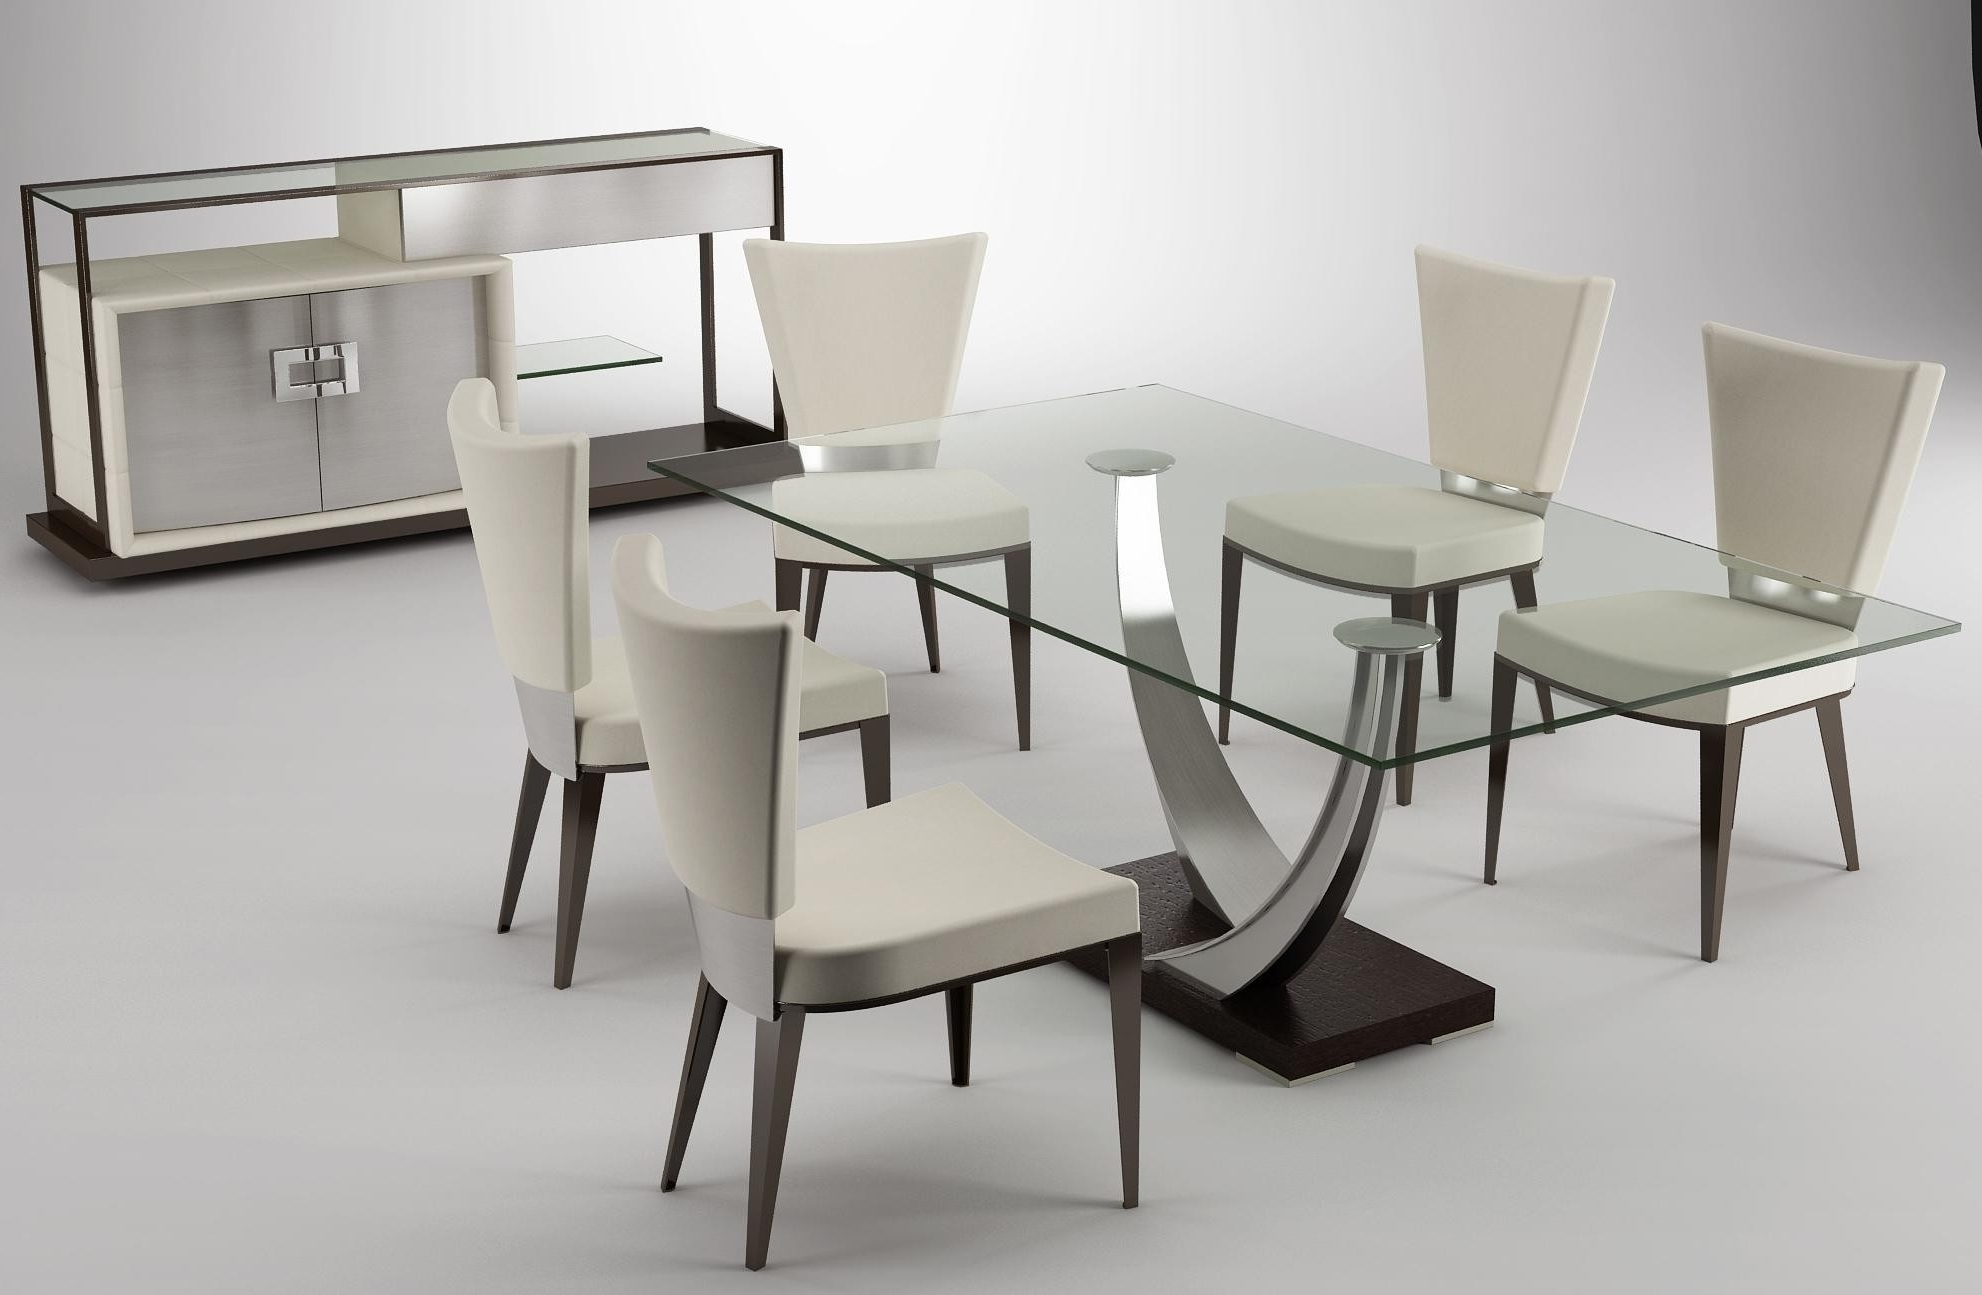 Favorite The 21 New Contemporary Dining Tables And Chairs Uk For Contemporary Dining Tables (View 19 of 25)